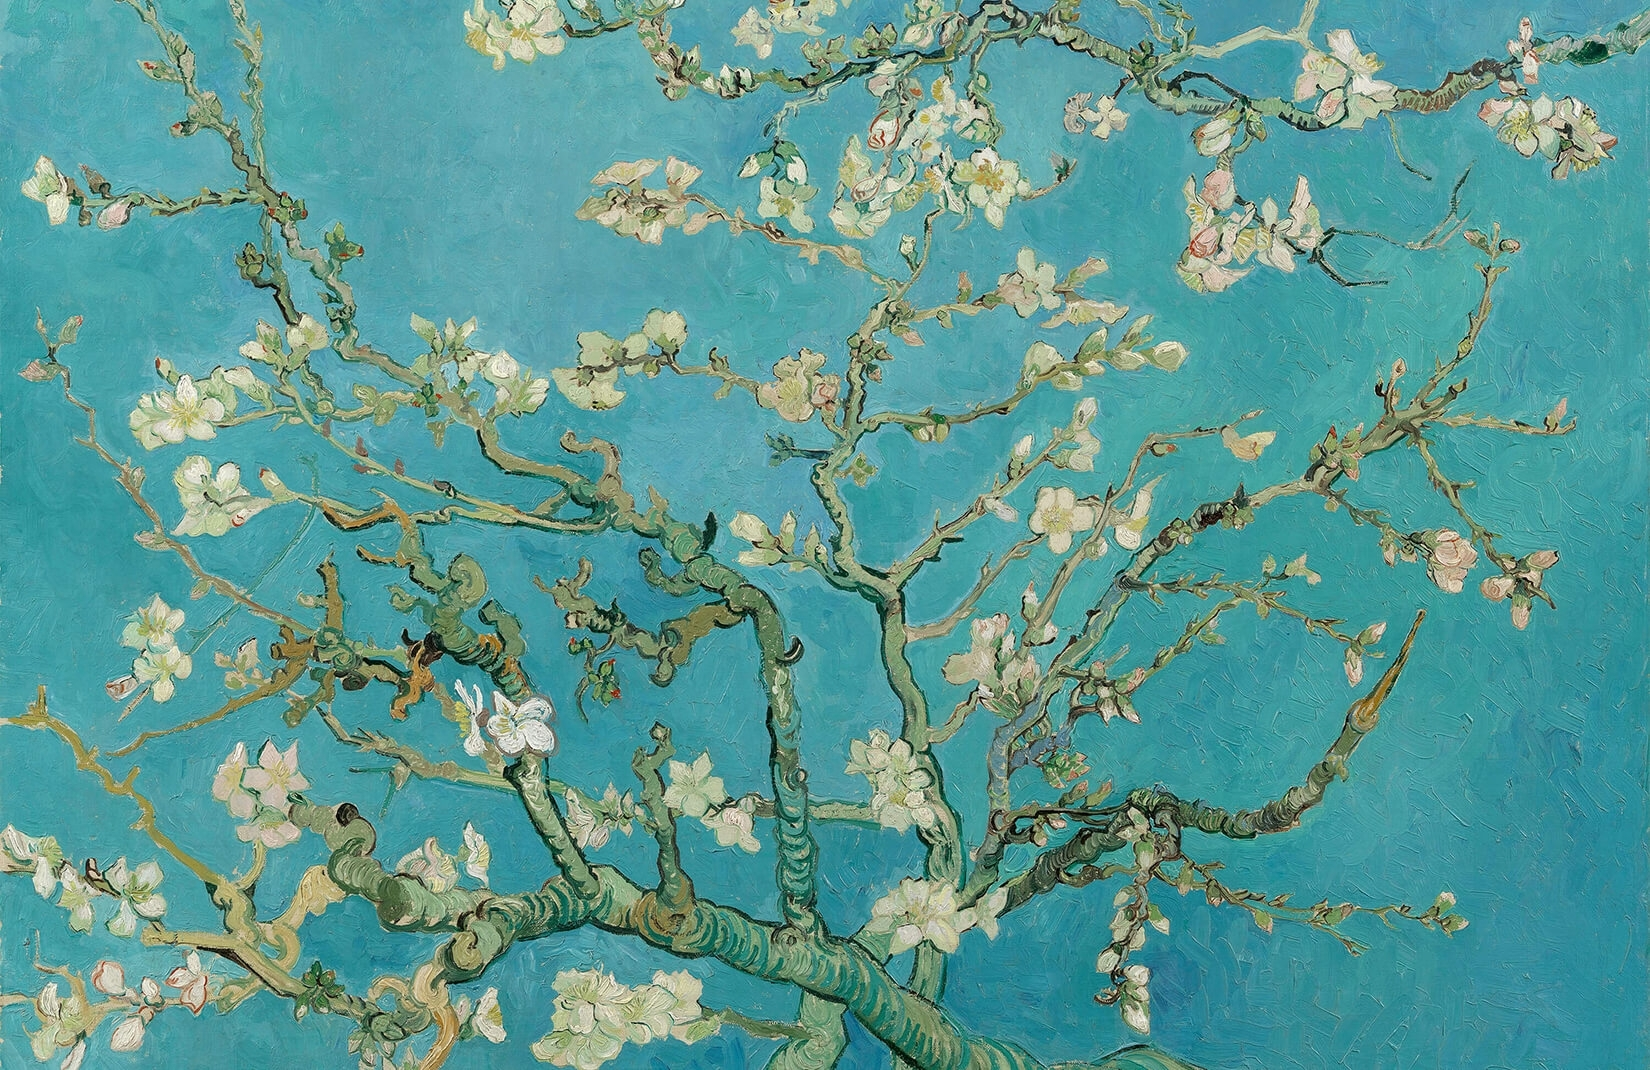 almond branchesvan gogh wall mural | muralswallpaper.co.uk